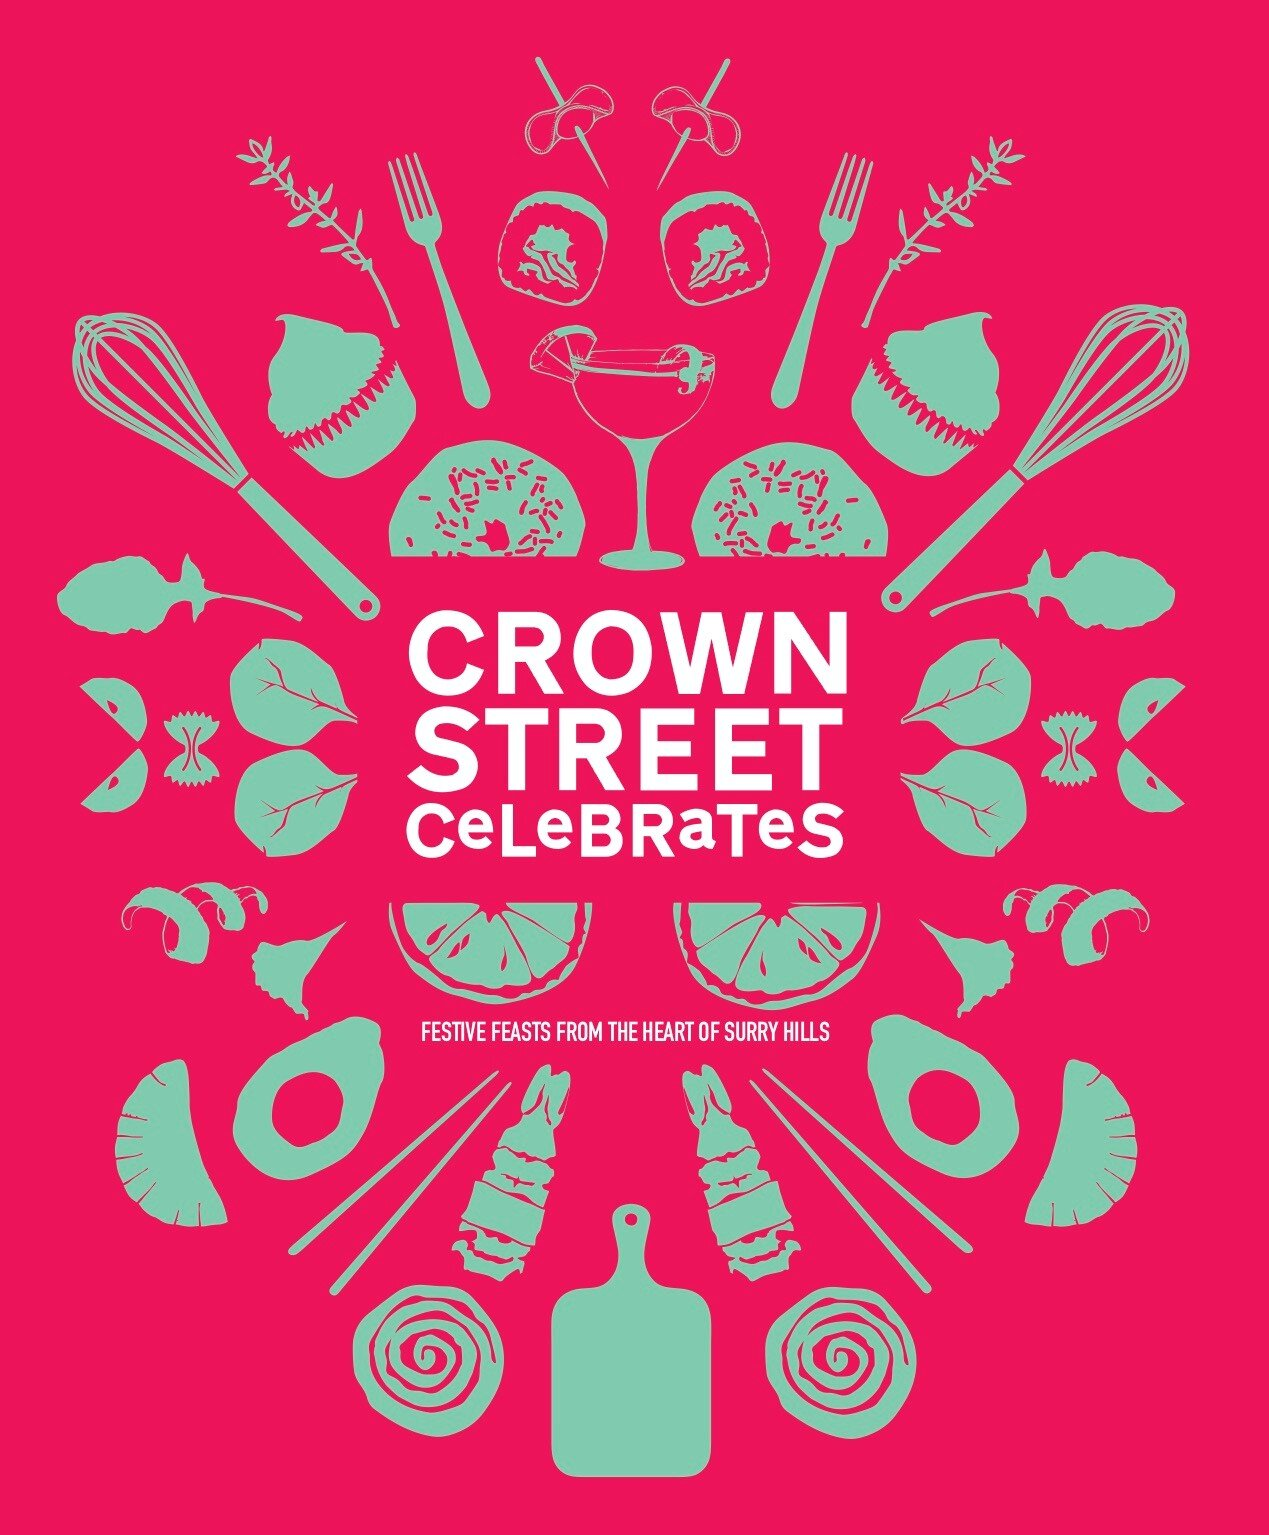 10.15am - 'Crown Street Celebrates' Cook Book Launch - 'Crown Street Celebrates' will be launched to the public on fete day by the Hon Tanya Plibersek MP. This beautifully photographed, 200 page cookbook, includes 100 recipes by talented home cooks and big-name chefs from Surry Hills. Proudly supported by The Dolphin Hotel and Hotel Harry, 'Crown Street Celebrates' will feature food recipes from Fred's, Poly, Alberto's Lounge, Bills, Don Peppino's, Spice I Am, El Loco, 10 William Street, Belles Hot Chicken, Bad Hombres, Bar Ume, Bodega, Jillians Cakery, Butter, Two Skinny Pickles and Epic Pizza, plus drink recipes from Tio's Cerveceria, Scout Bar, Shady Pines Saloon, Caffe Bartolo, Dead Ringer and The Wild Rover. Curated by Jane Strode and Jeremy Blackmore and produced by an amazing team of creative parents, 'Crown Street Celebrates' will raise much needed funds for the school with $1, from each book sold, being donated to Oasis Youth Support Network.